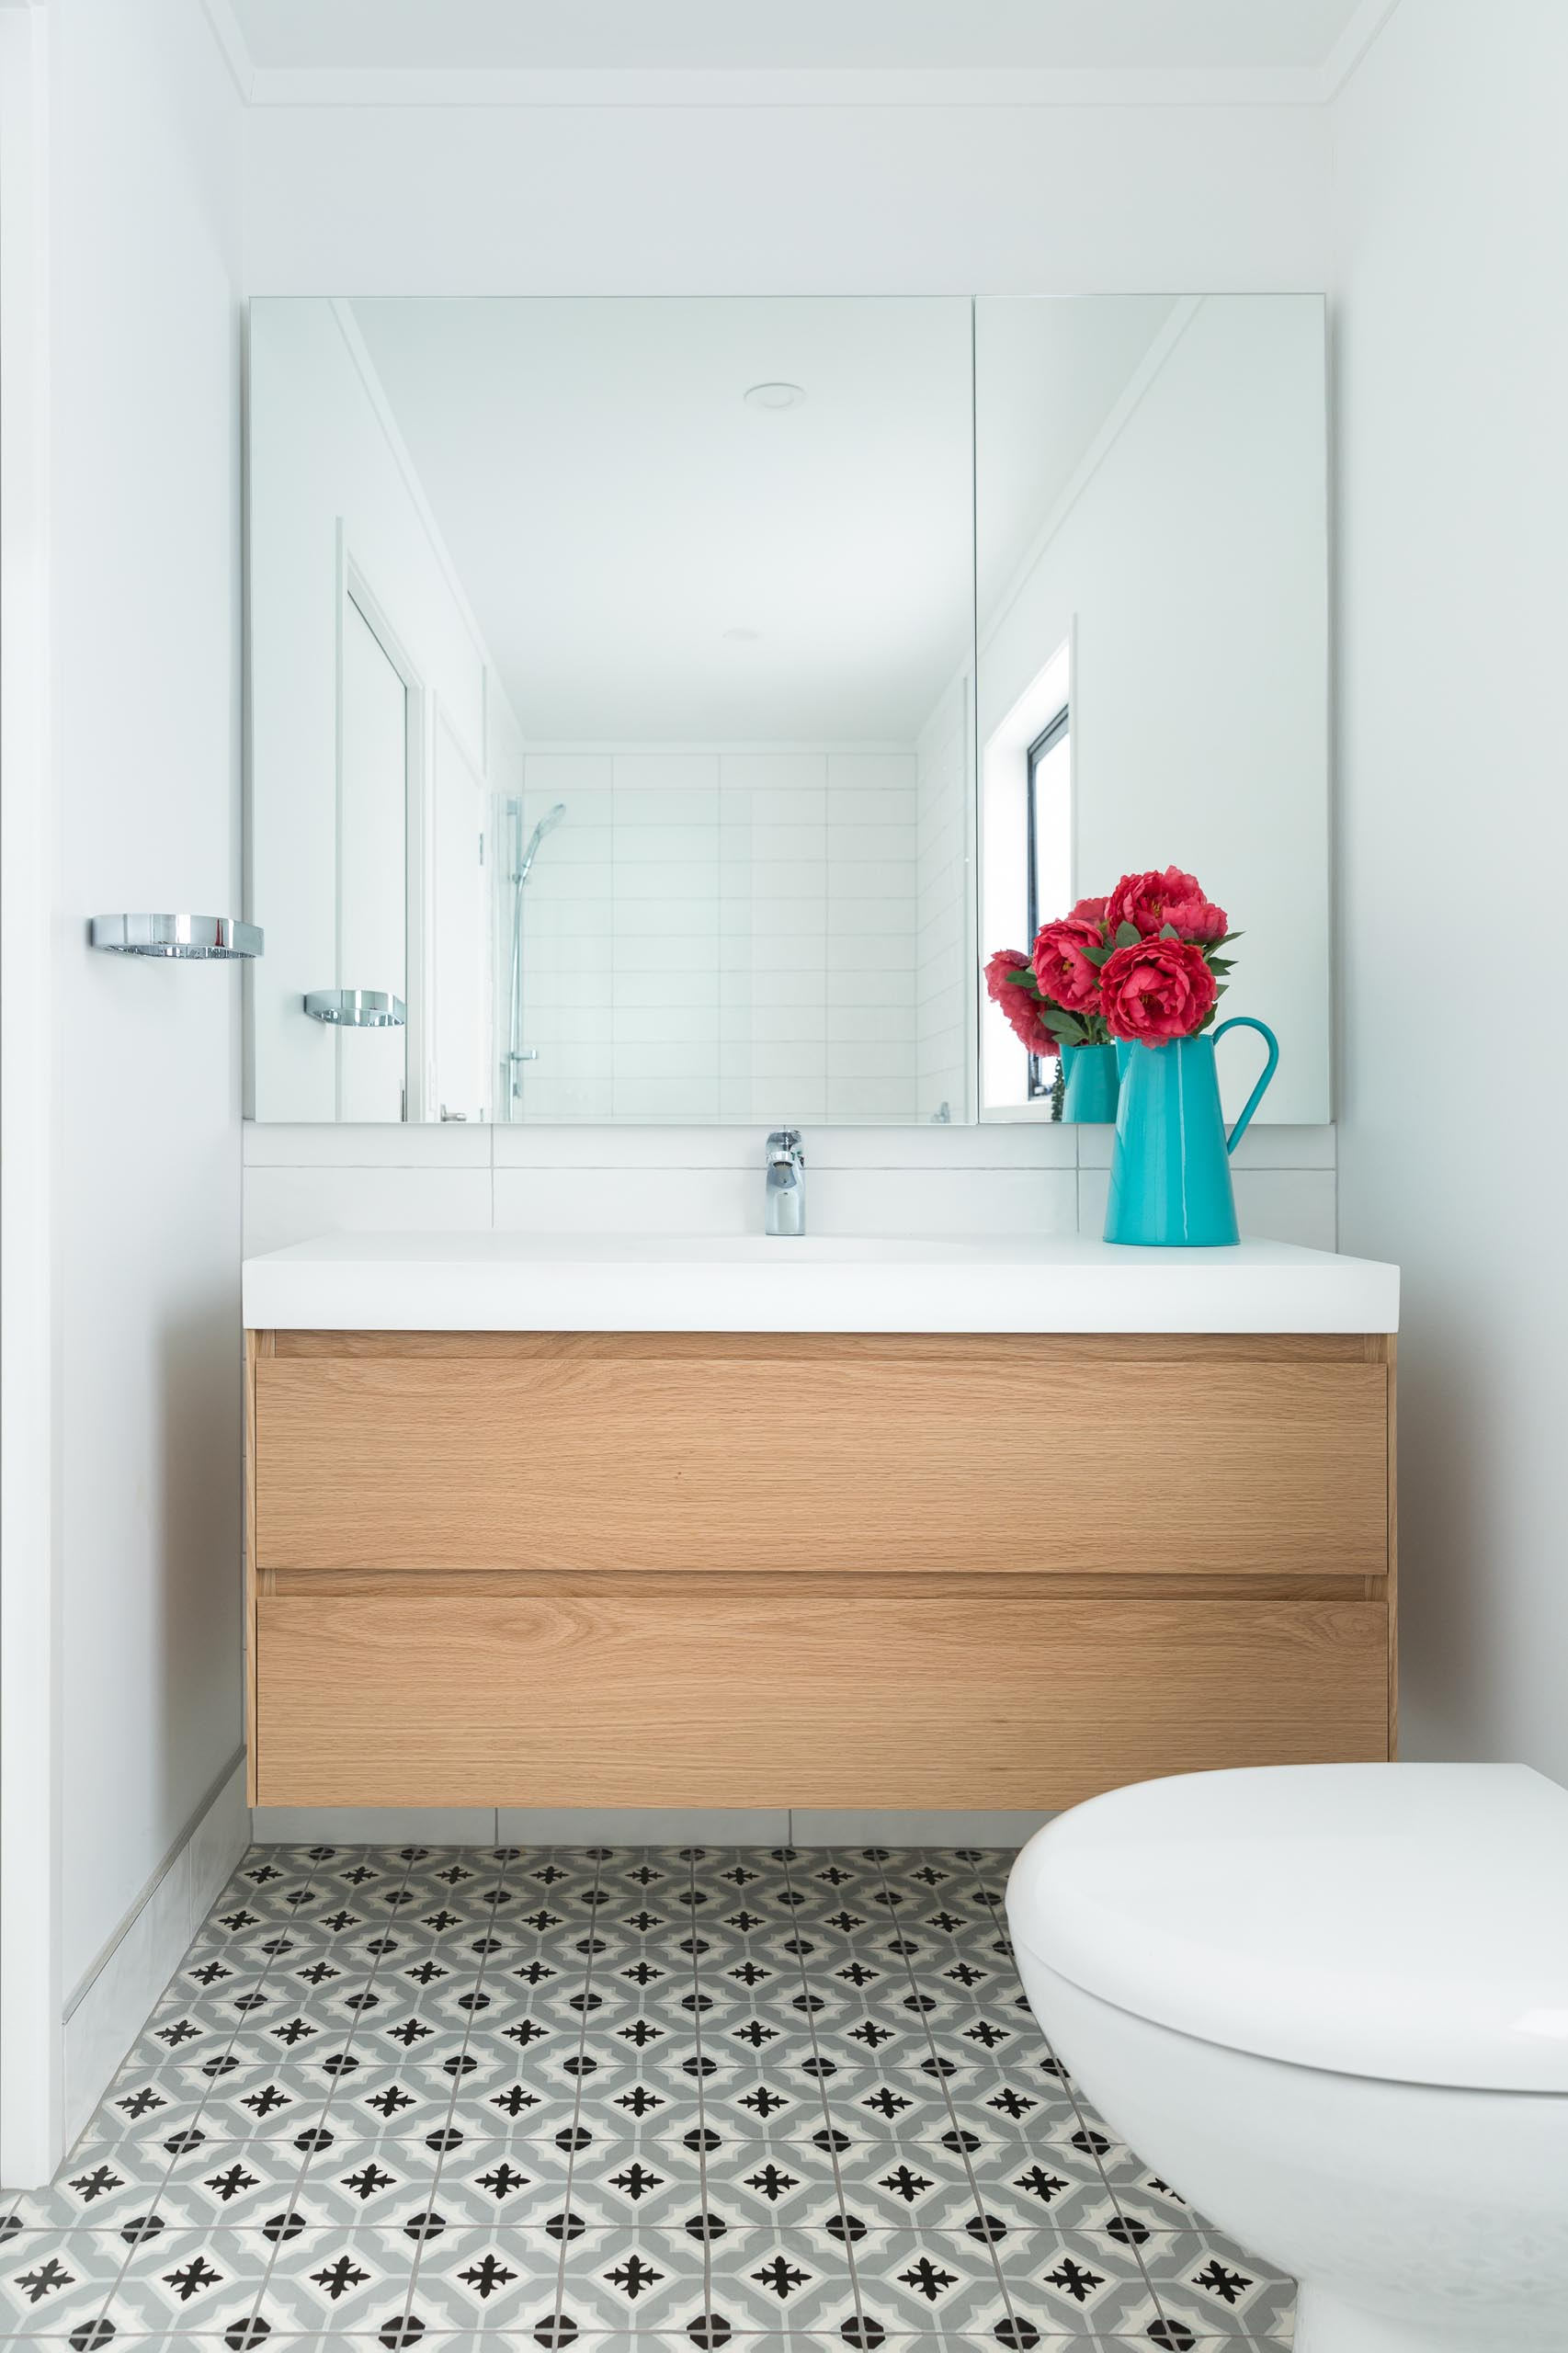 This modern bathroom includes patterned floor tiles, a floating wood vanity, a large mirror, and white wall tiles.